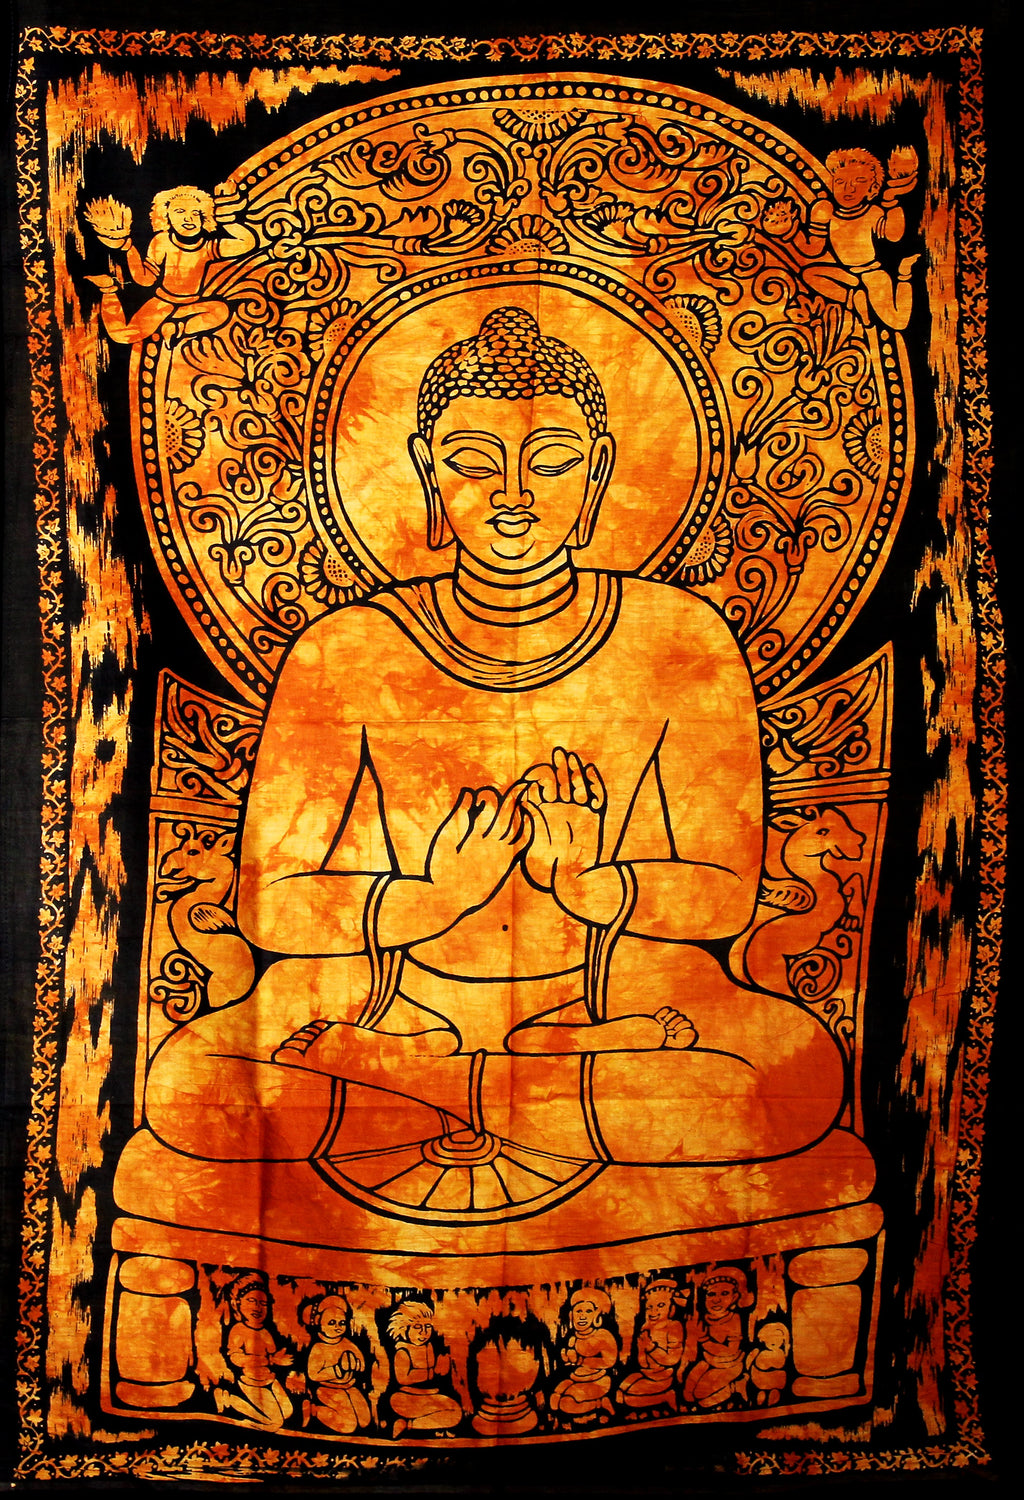 Hand printed Fabric Posters Mini Buddha Tapestry Wall Hanging - Available in 5 Colors